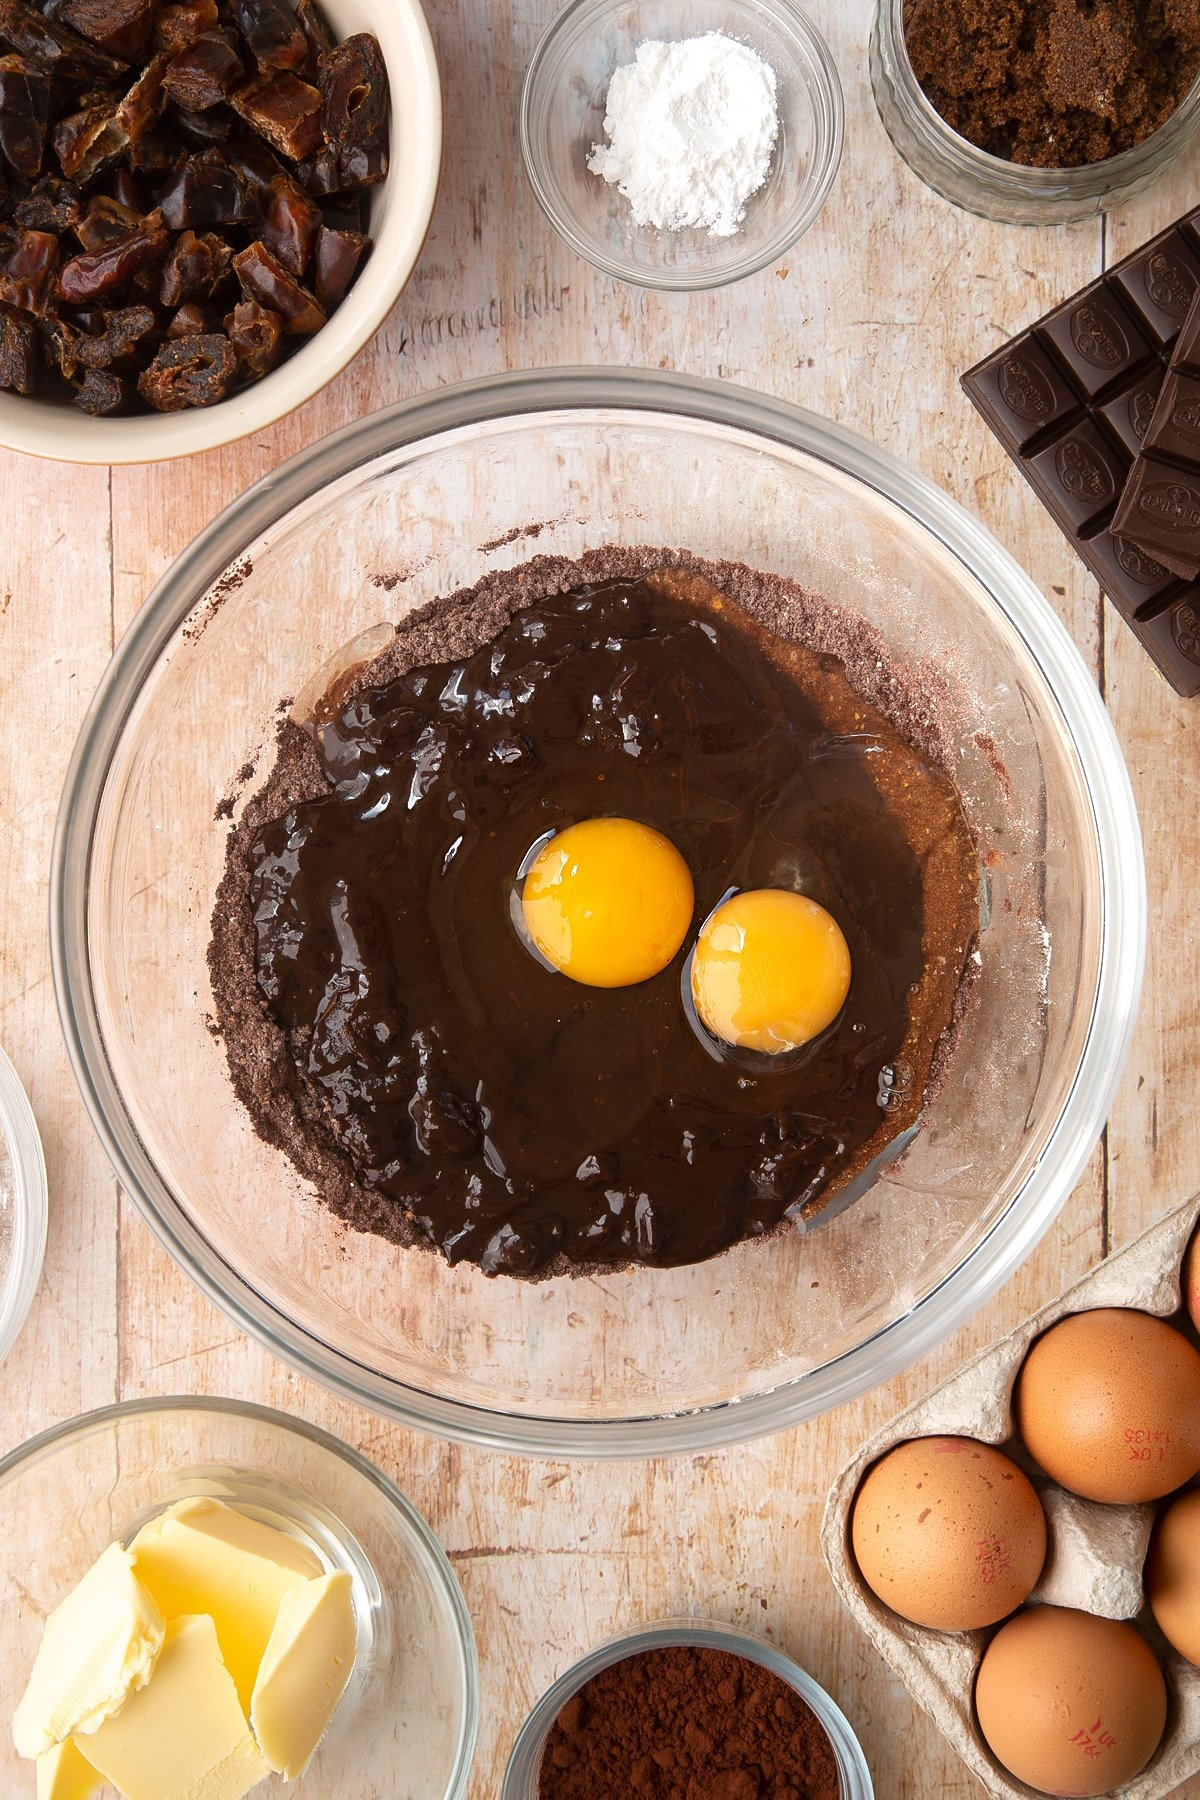 A mixing bowl containing cocoa, wholemeal flour and baking powder. The melted chocolate mixture and eggs have been added on top. Ingredients to make whole grain brownies surround the bowl.